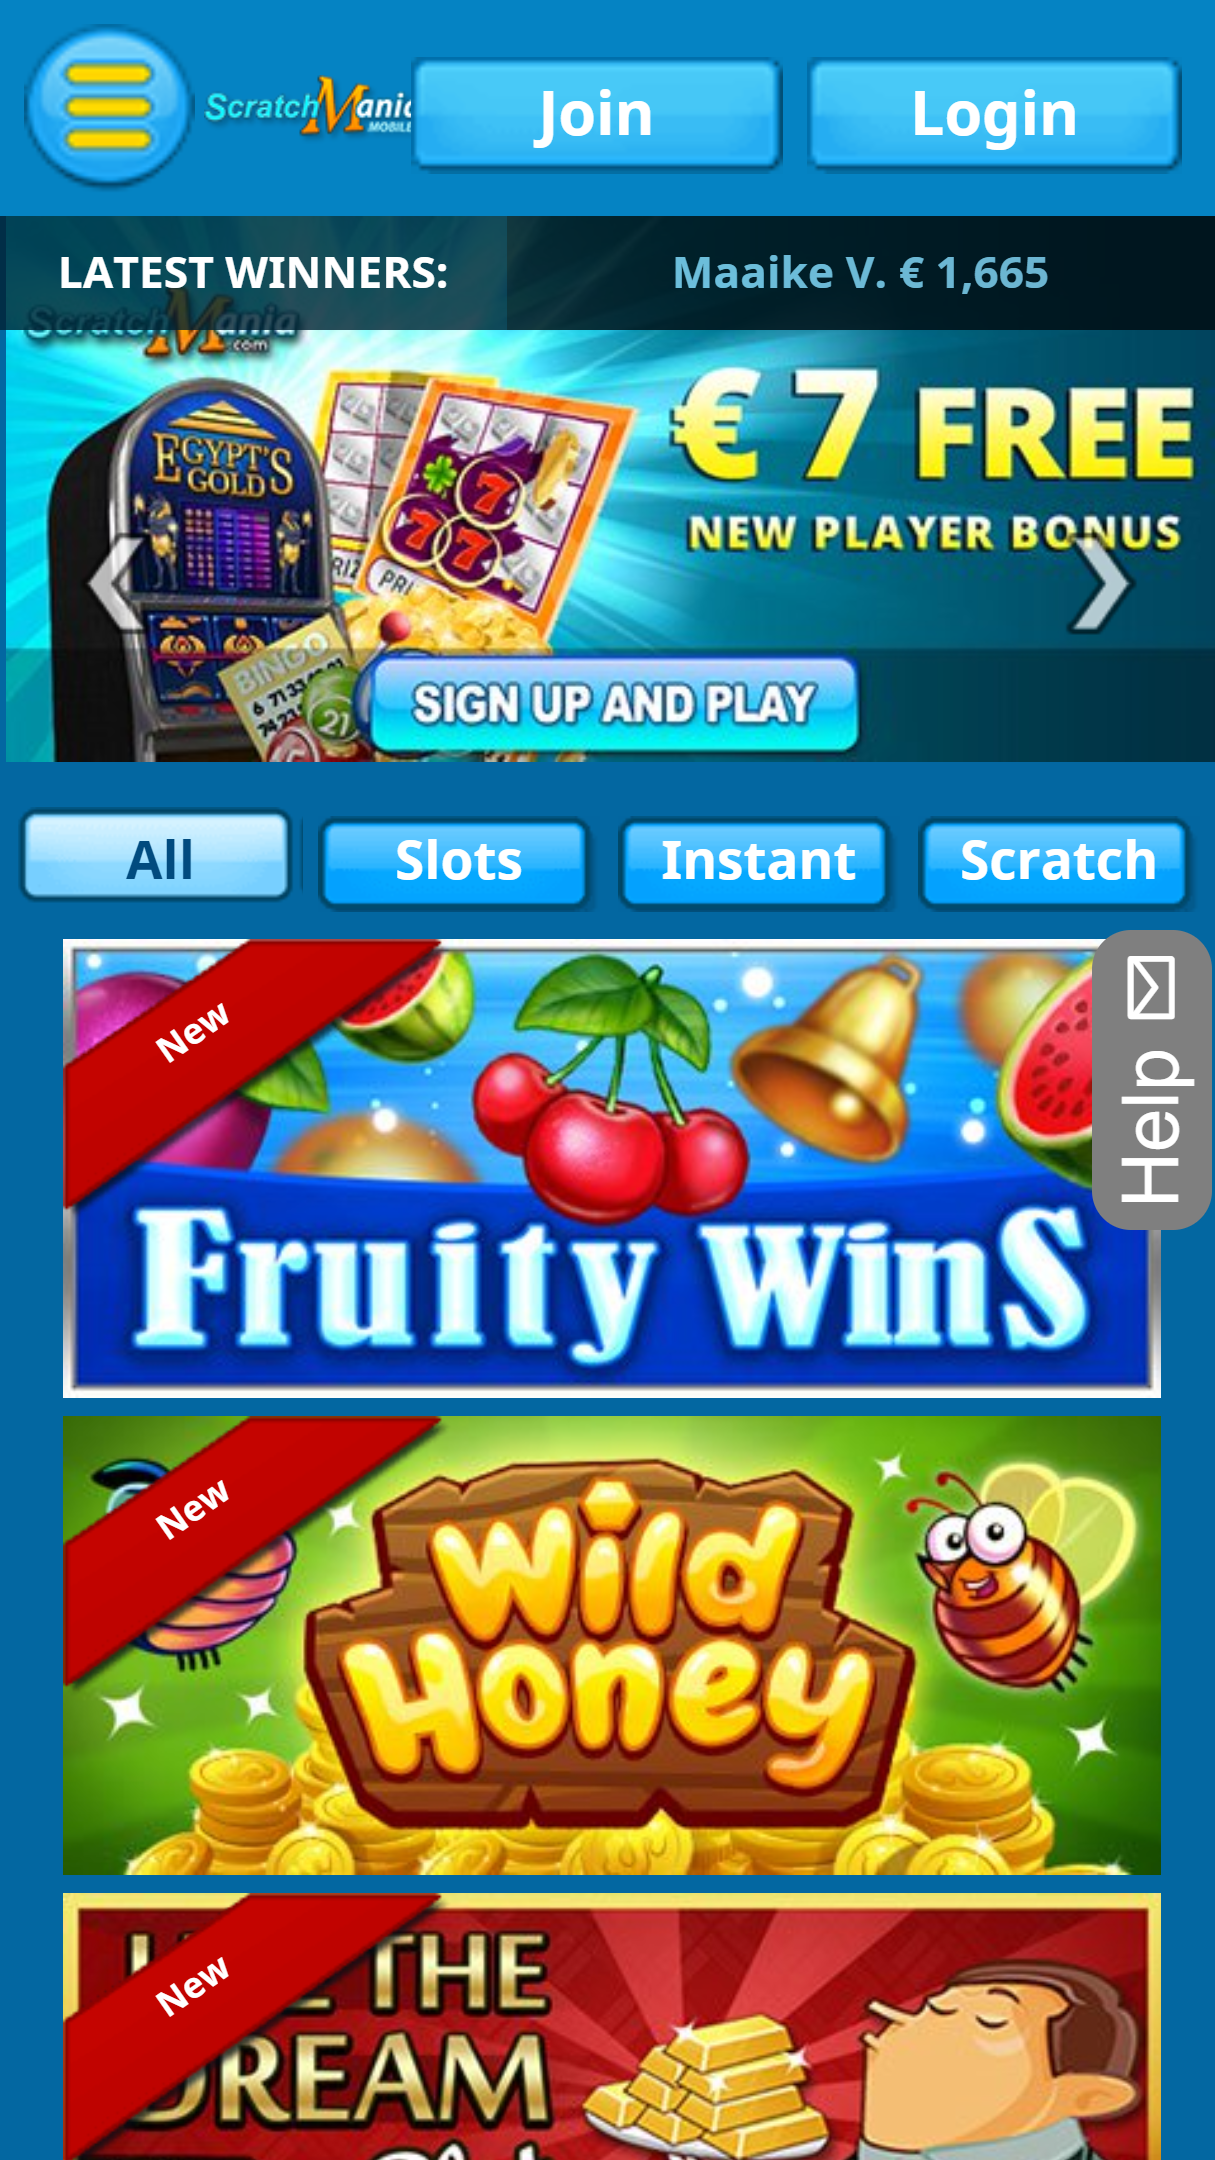 ScratchMania Casino App Homepage